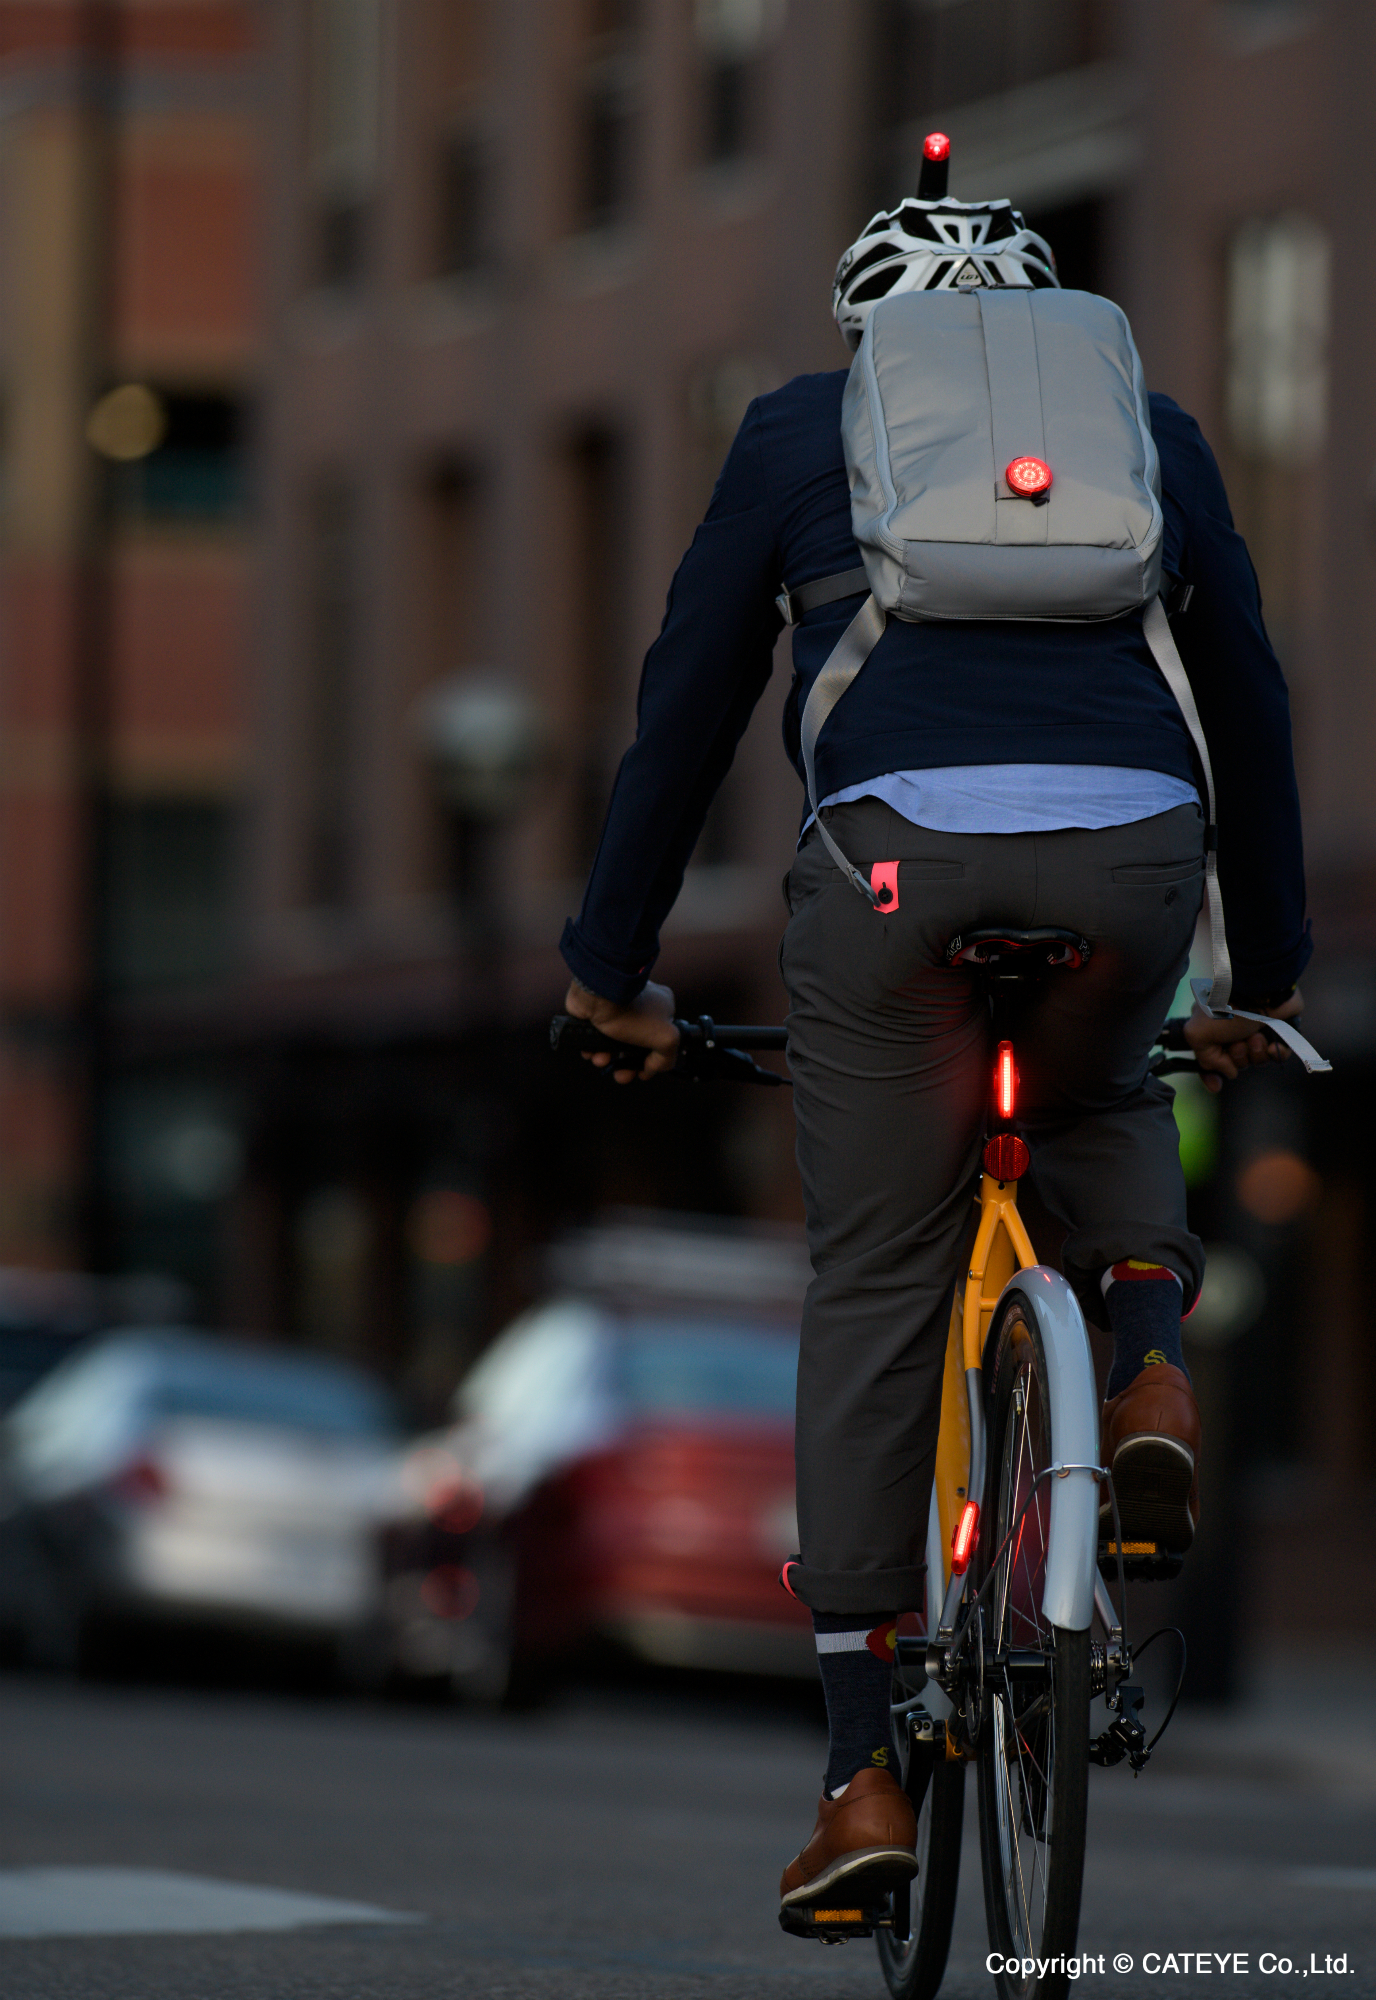 balance cycling and work by commuting to work